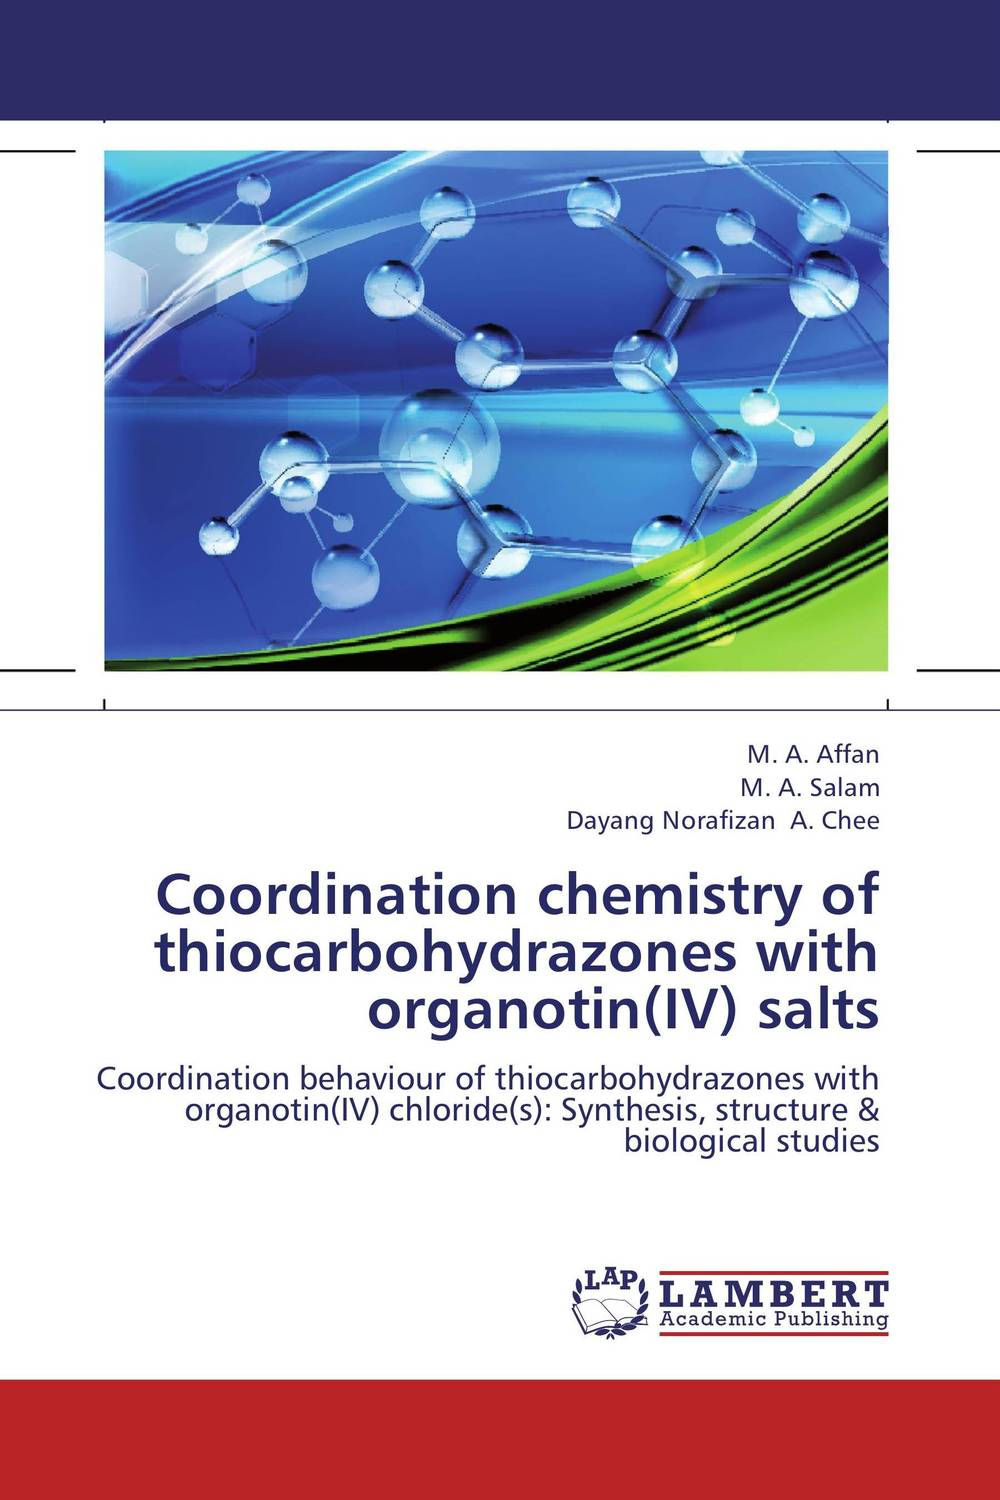 Coordination chemistry of thiocarbohydrazones with organotin(IV) salts rakesh kumar ameta and man singh quatroammonimuplatinate and anticancer chemistry of platinum via dfi